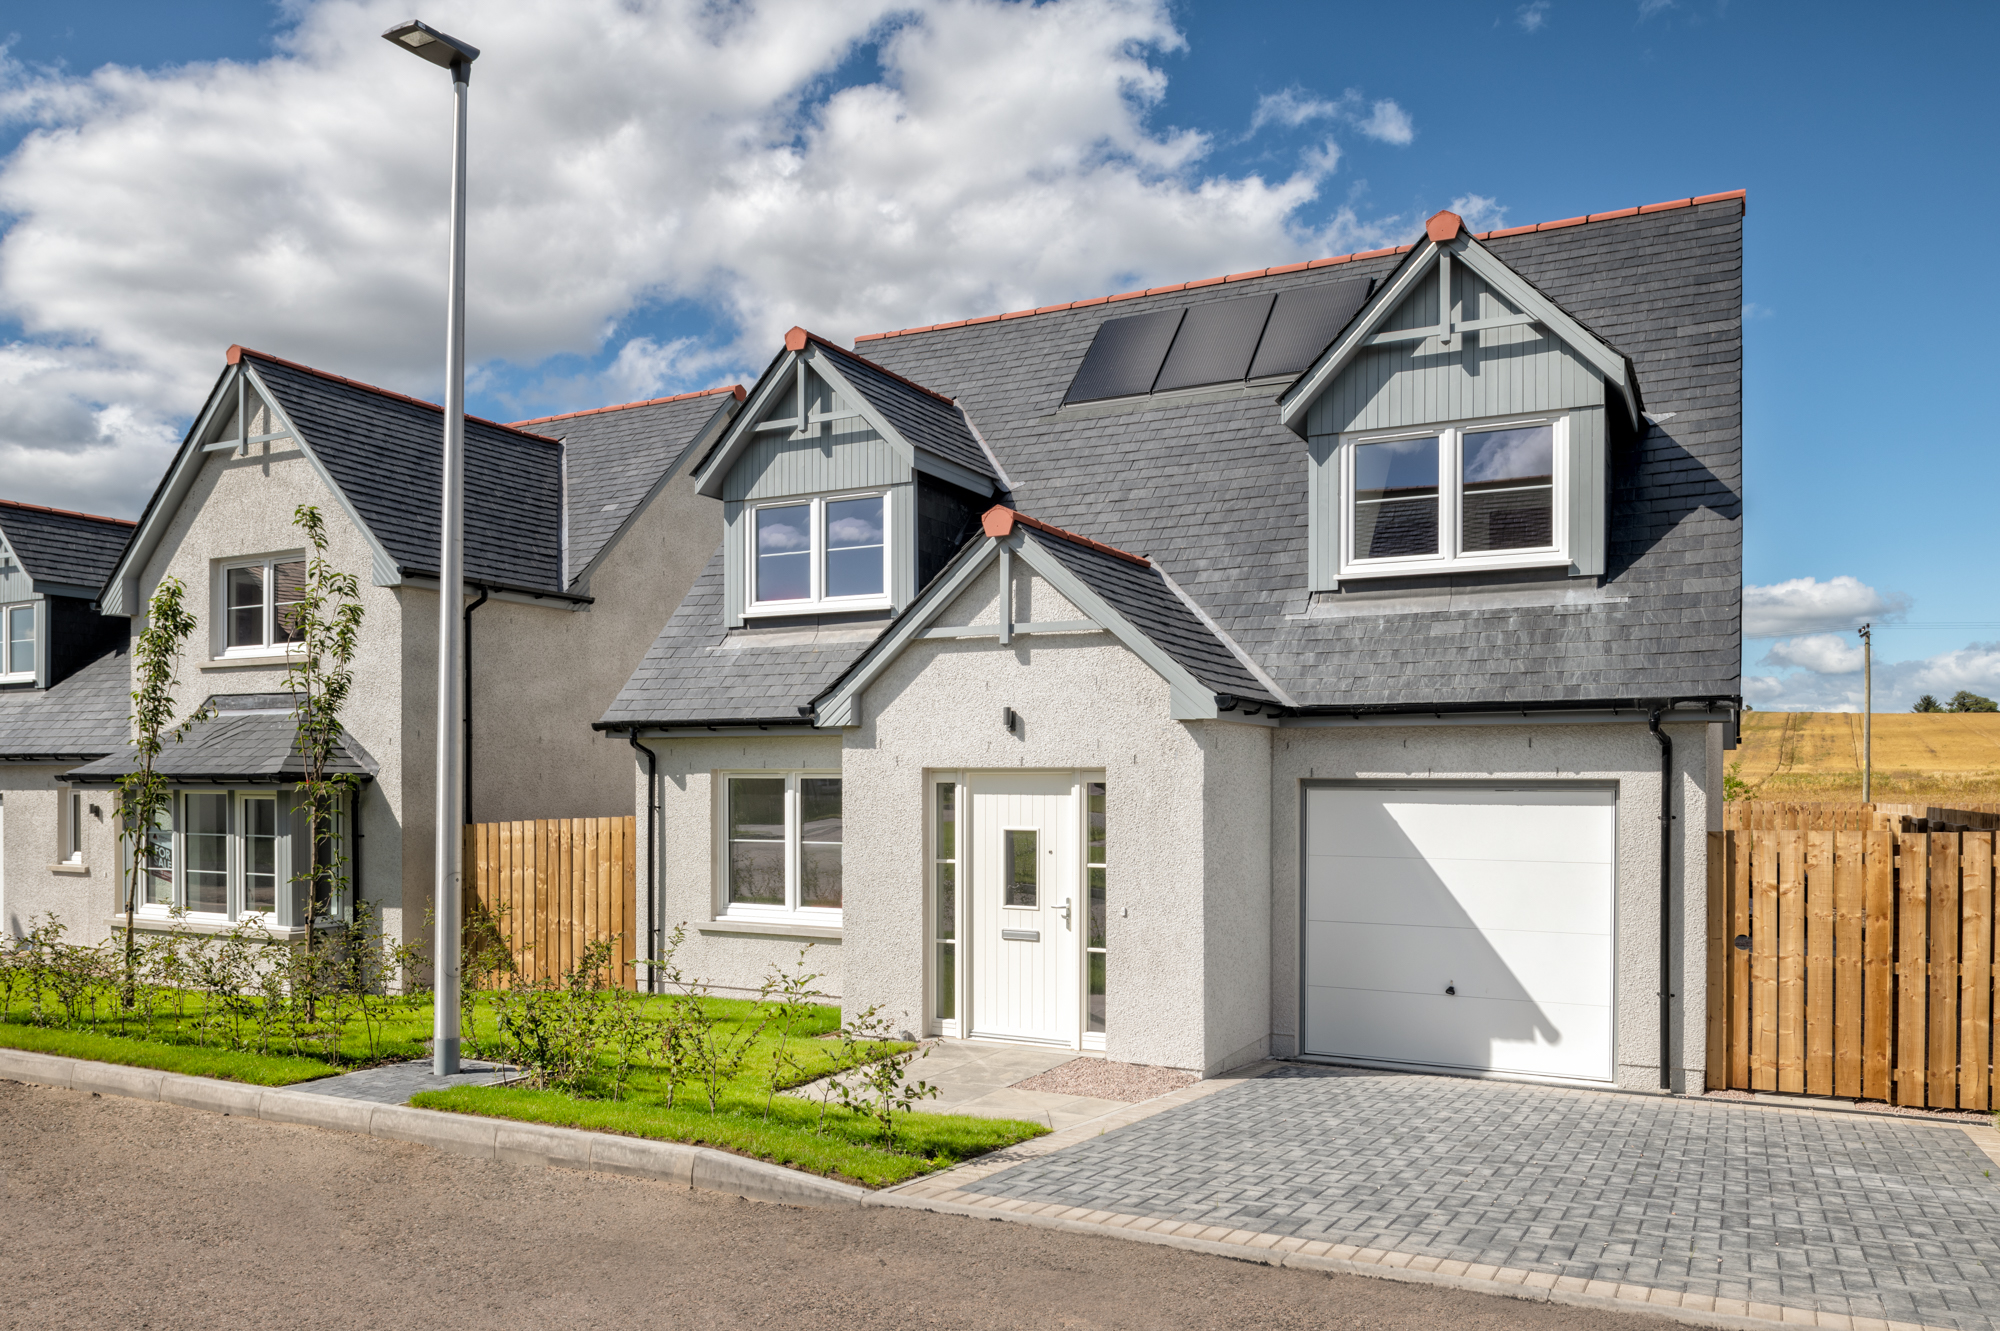 Plot 27 - The Craig - Cowdray Meadows